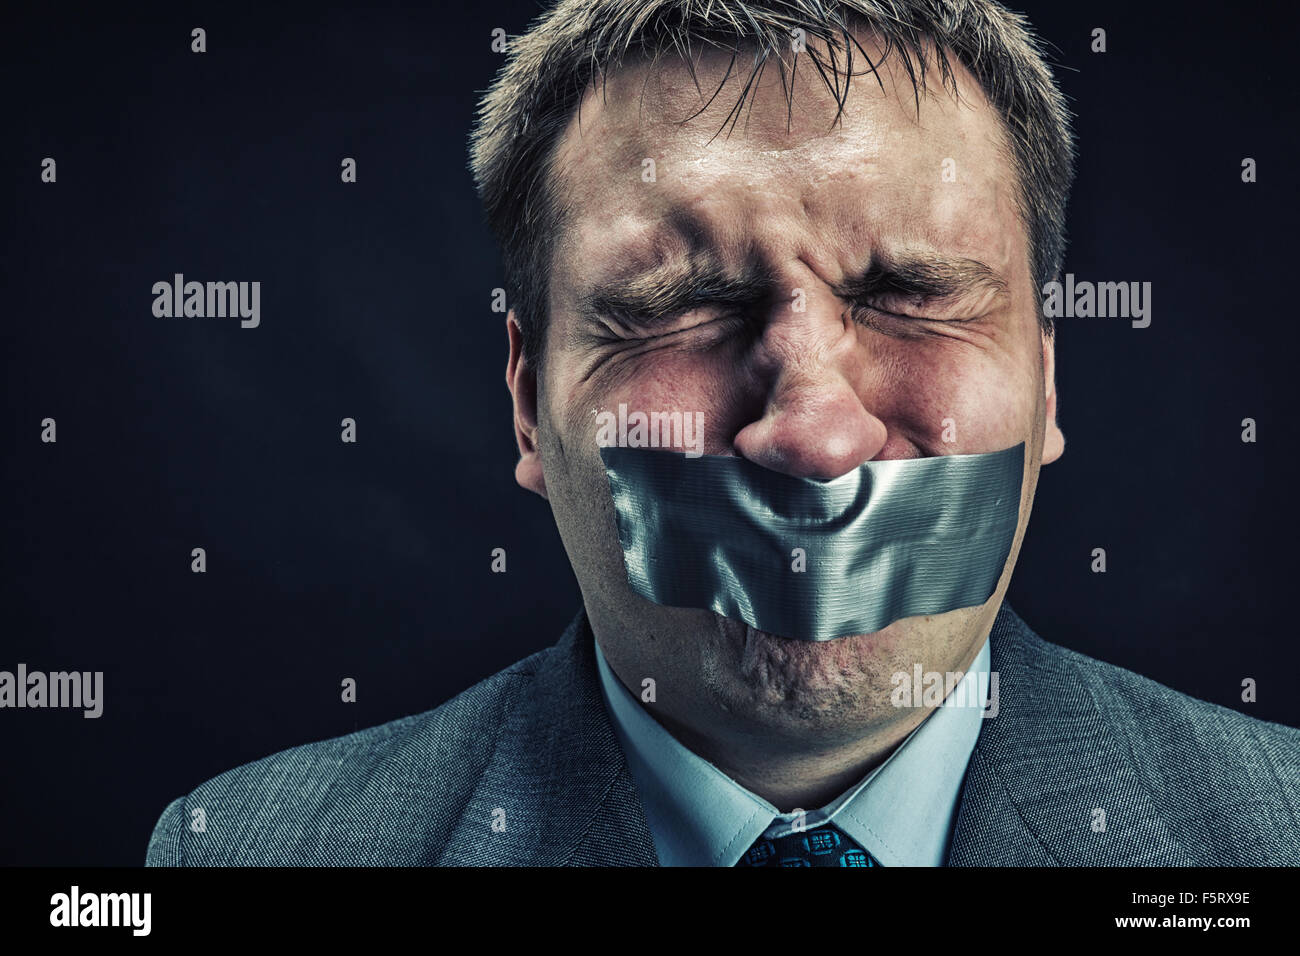 Man with mouth covered by masking tape preventing speech, isolated on black - Stock Image